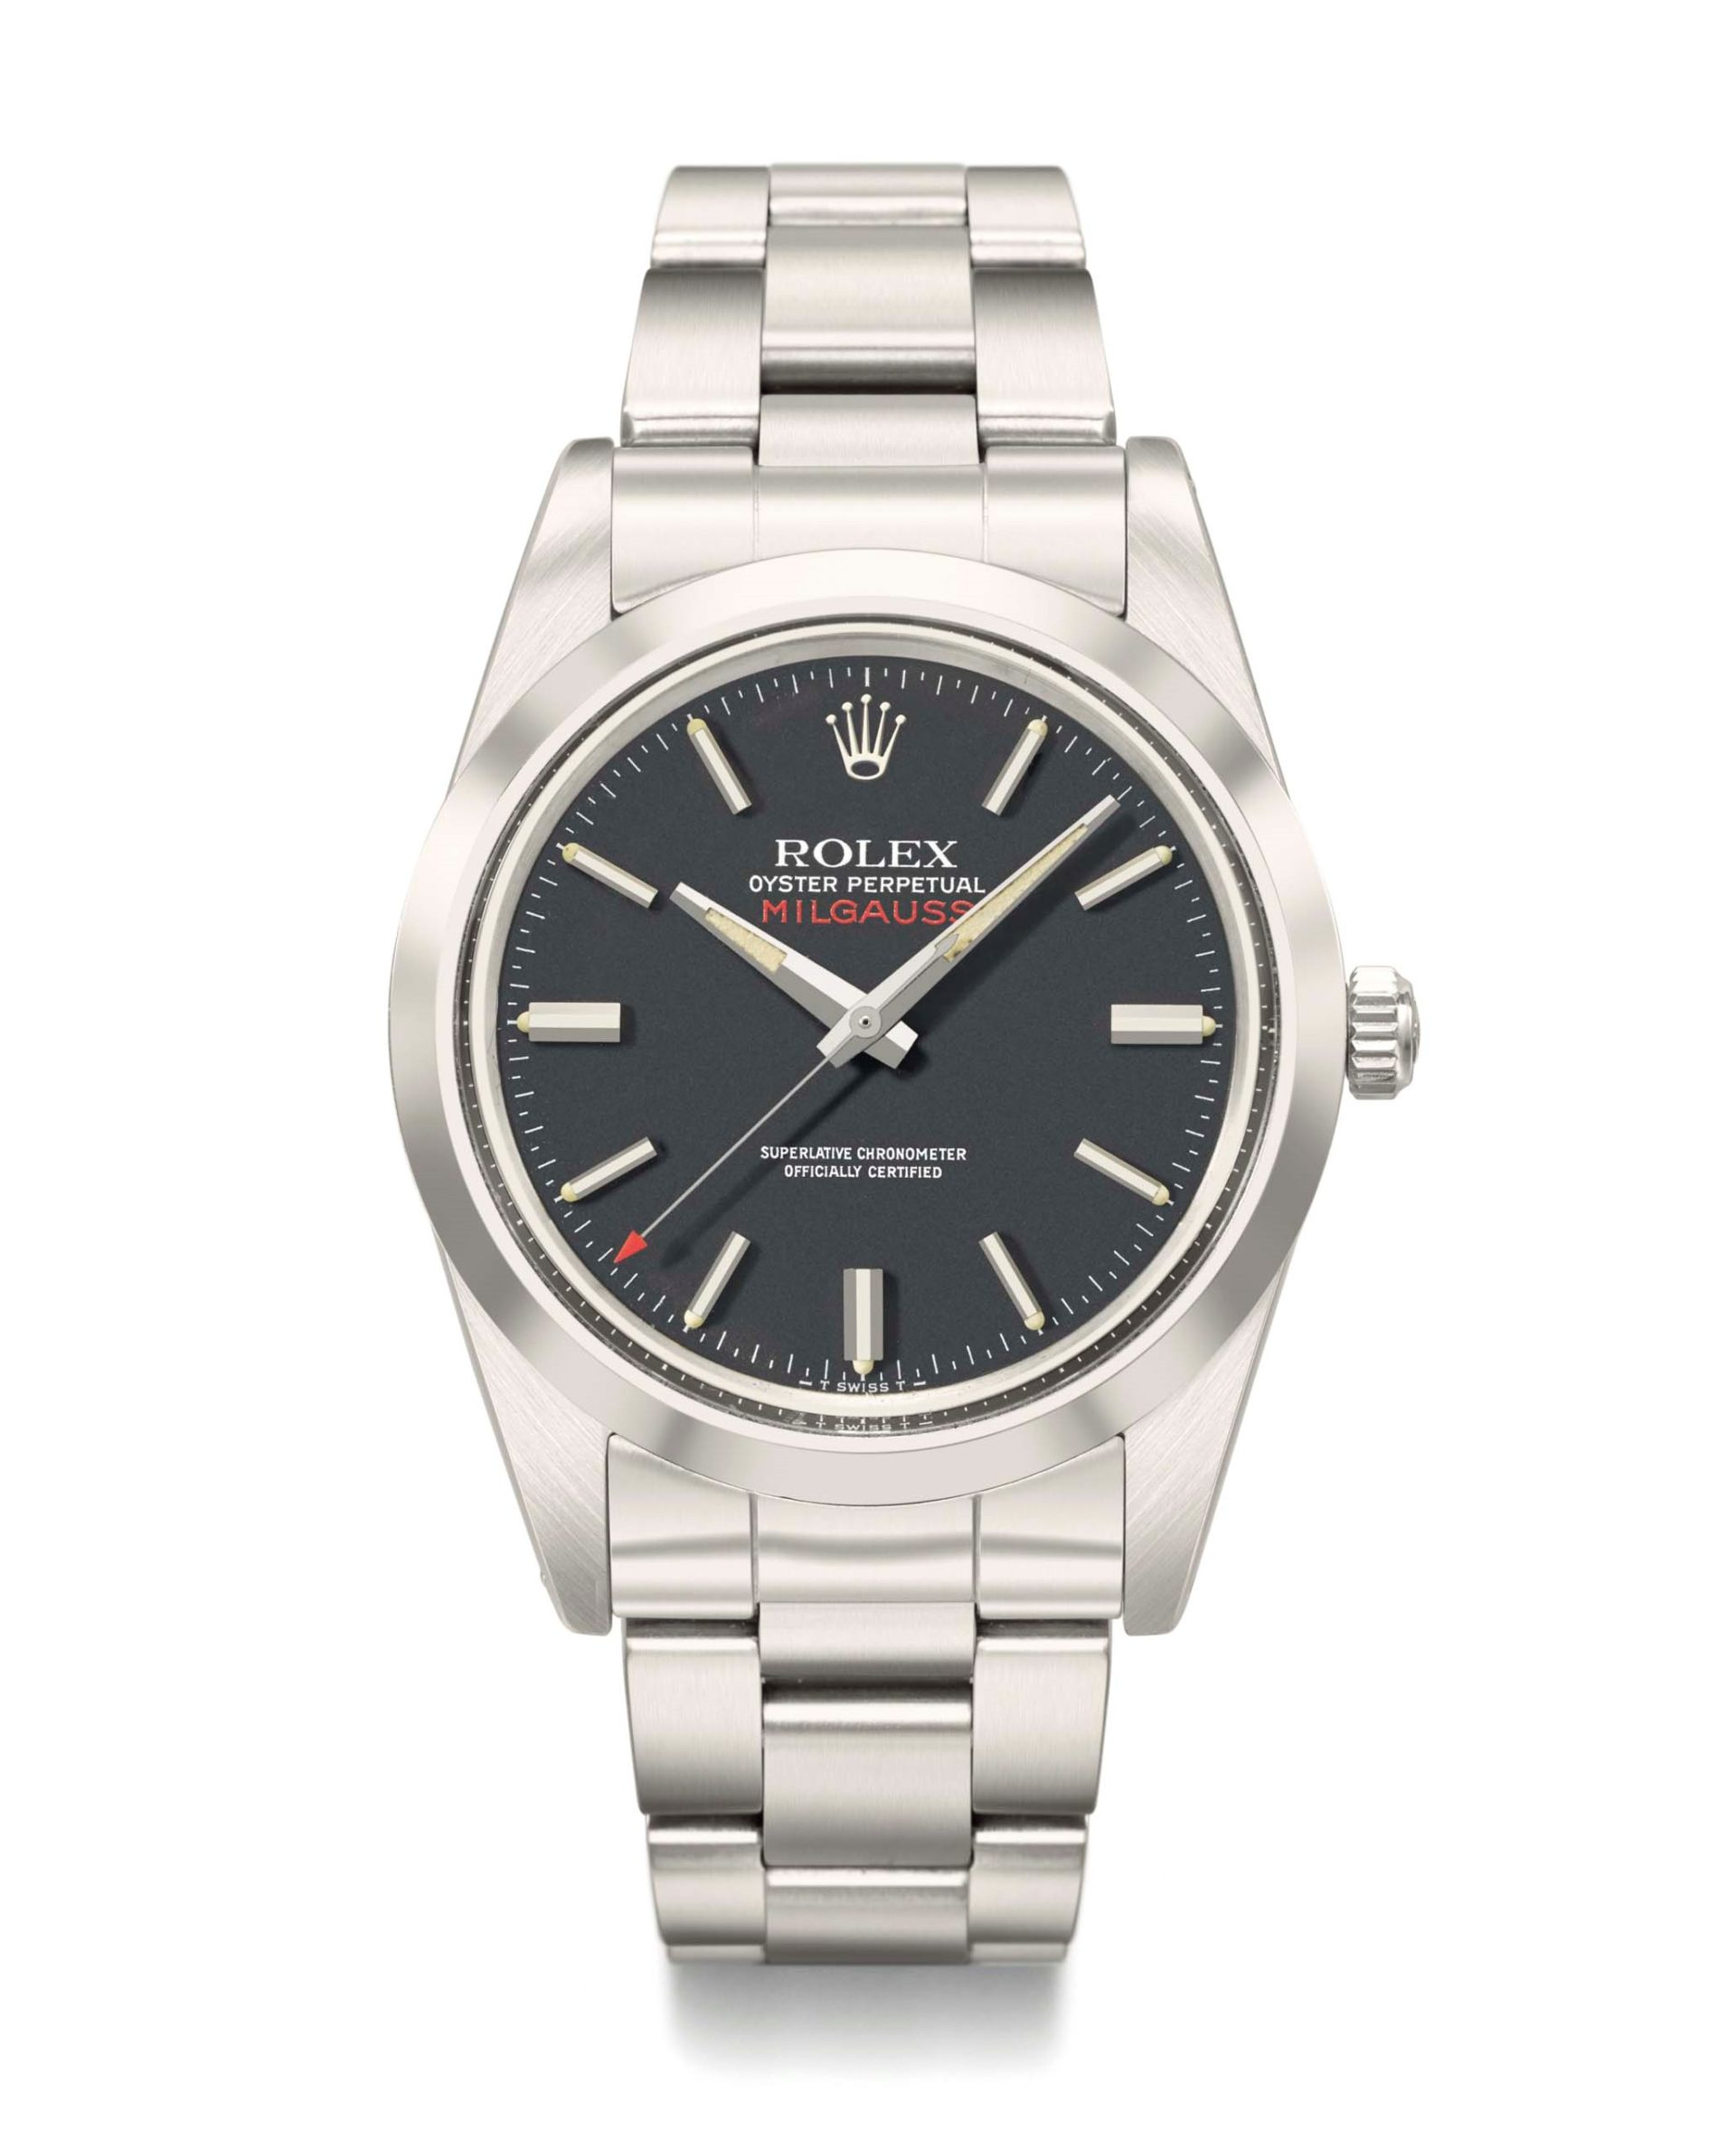 2017_GNV_14212_0201_000rolex_a_fine_and_rare_stainless_steel_automatic_anti-magnetic_wristwat-1-1920x2356